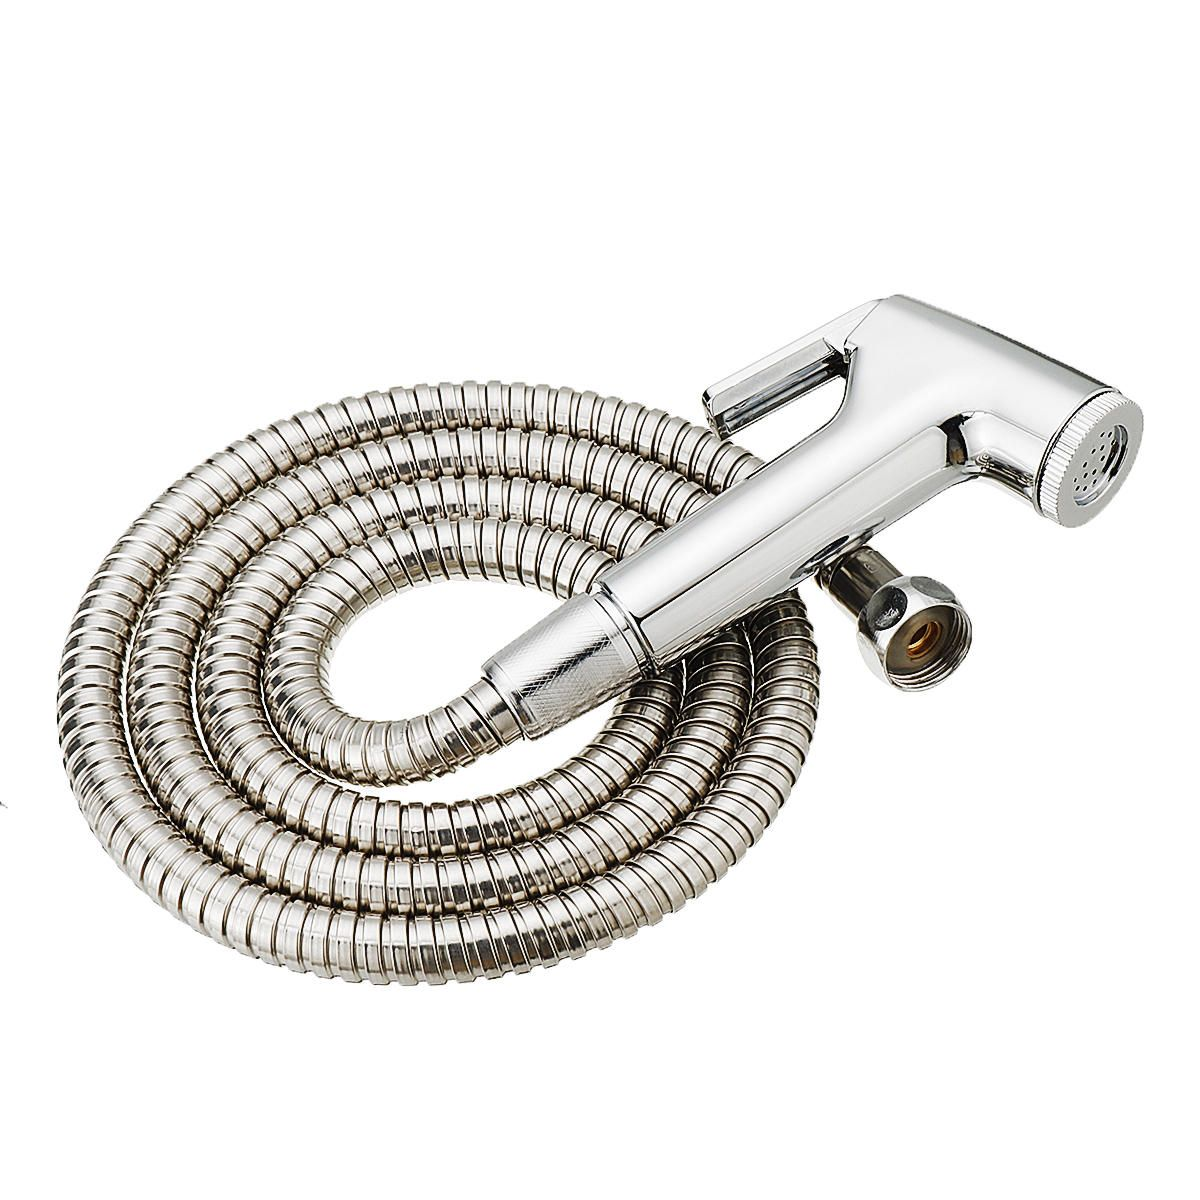 DEN US$4.79 ABS Bathroom Portable Bidet Sprayer Handhold Toilet Bidet Shower Head Sprayer for Personal Hygiene w/ 1.5m Stainless Steel Hose